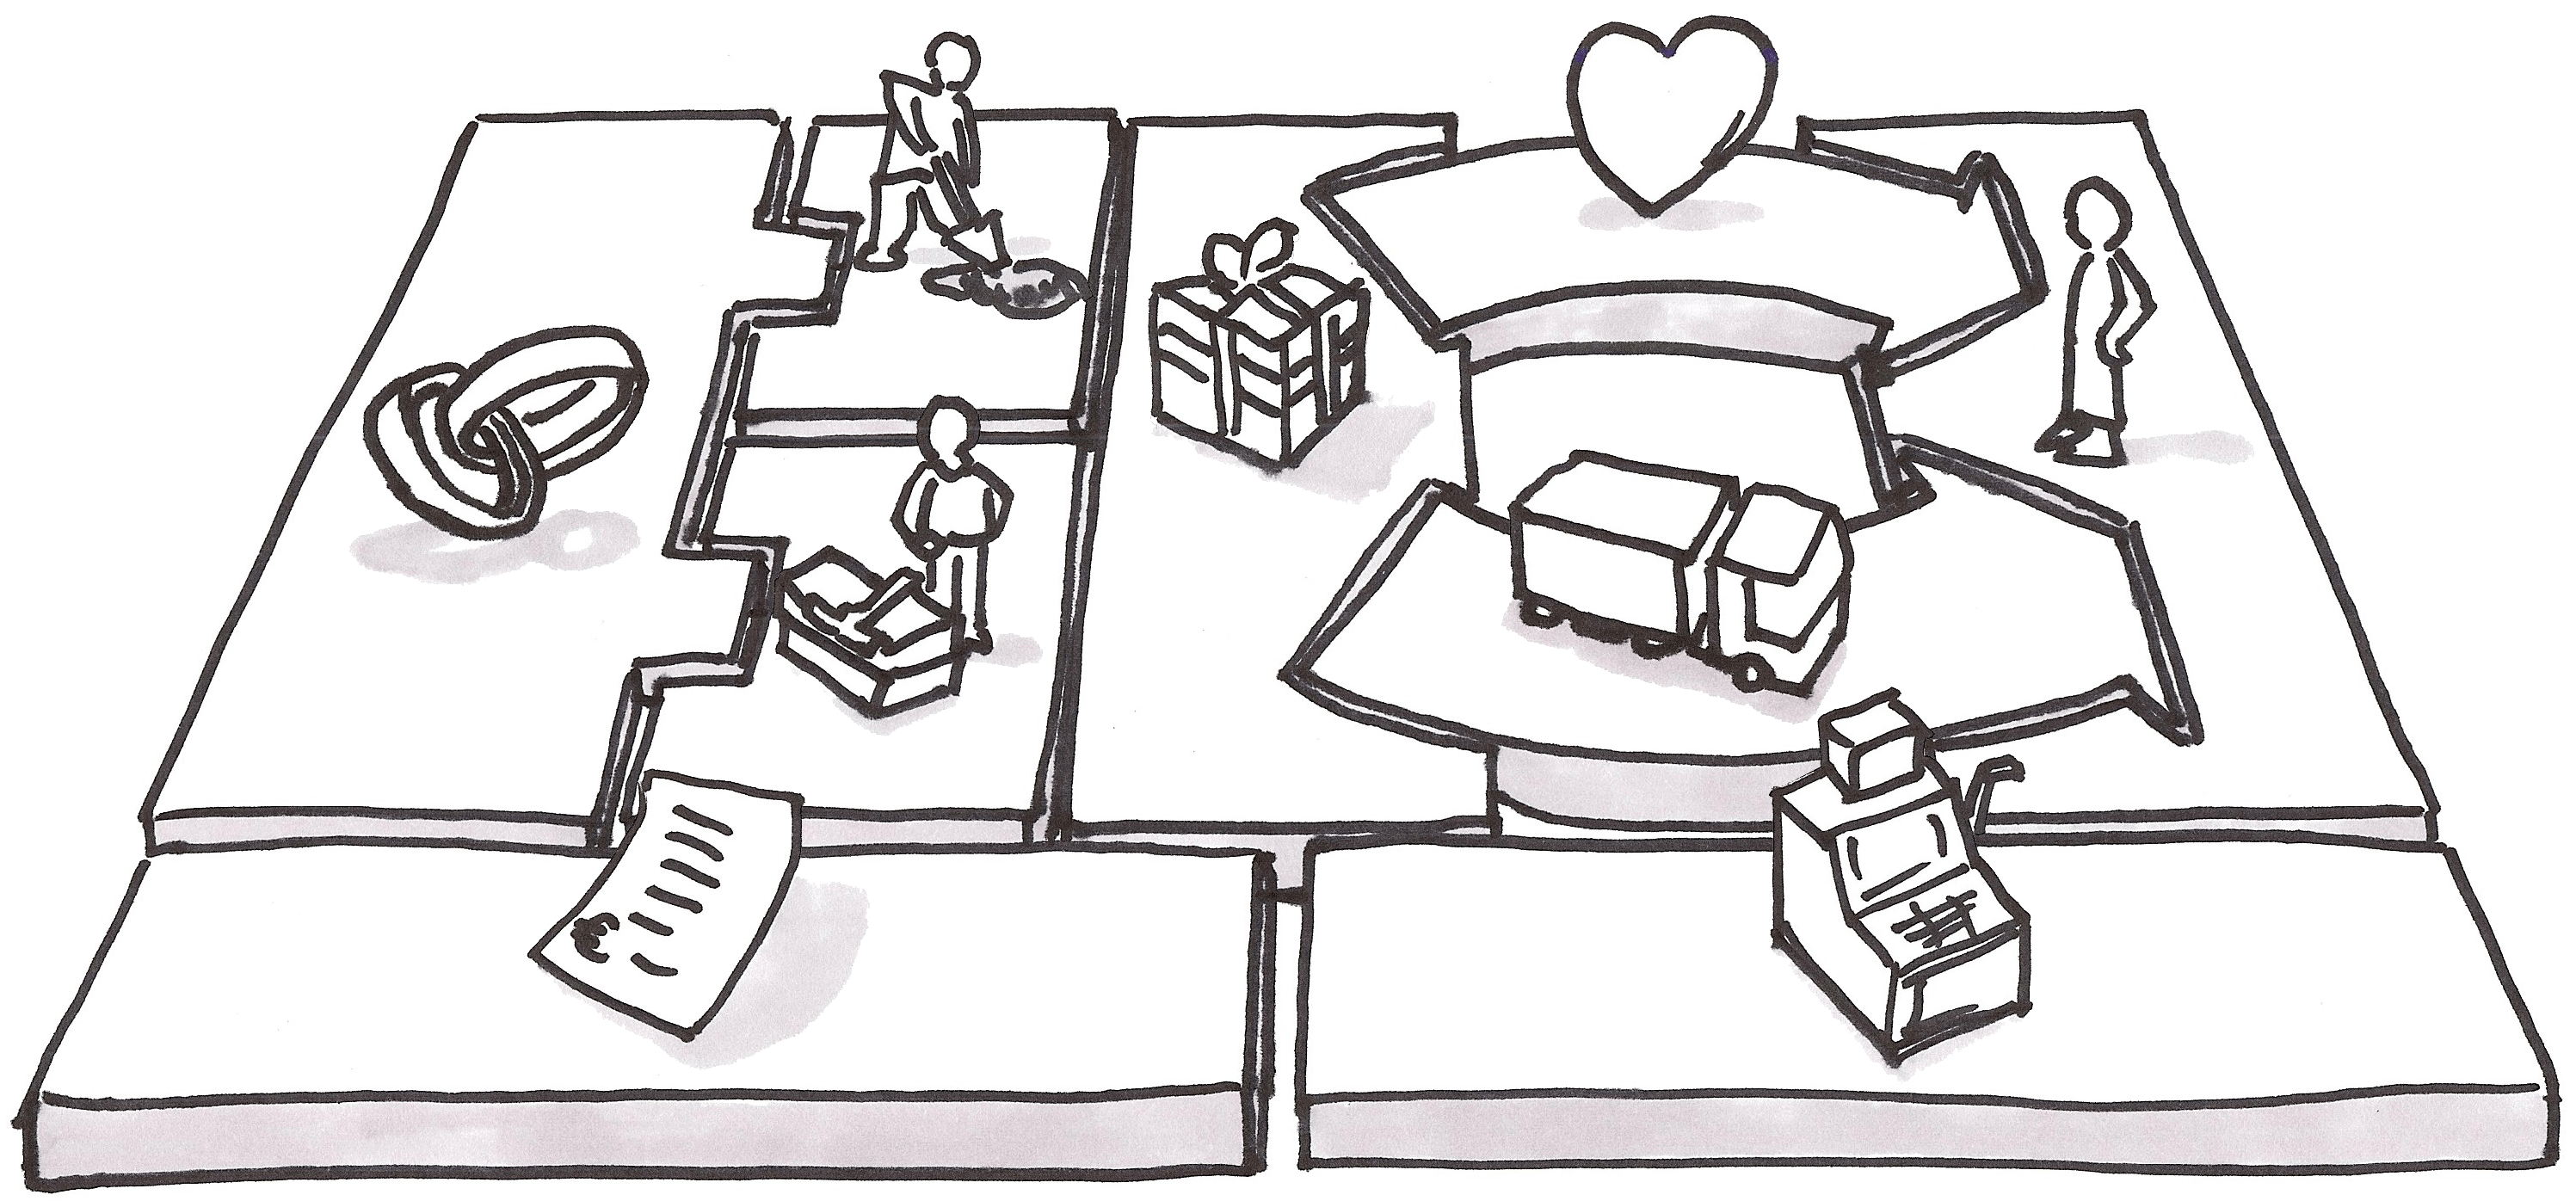 Business Model Canvas by Alexander Osterwalder